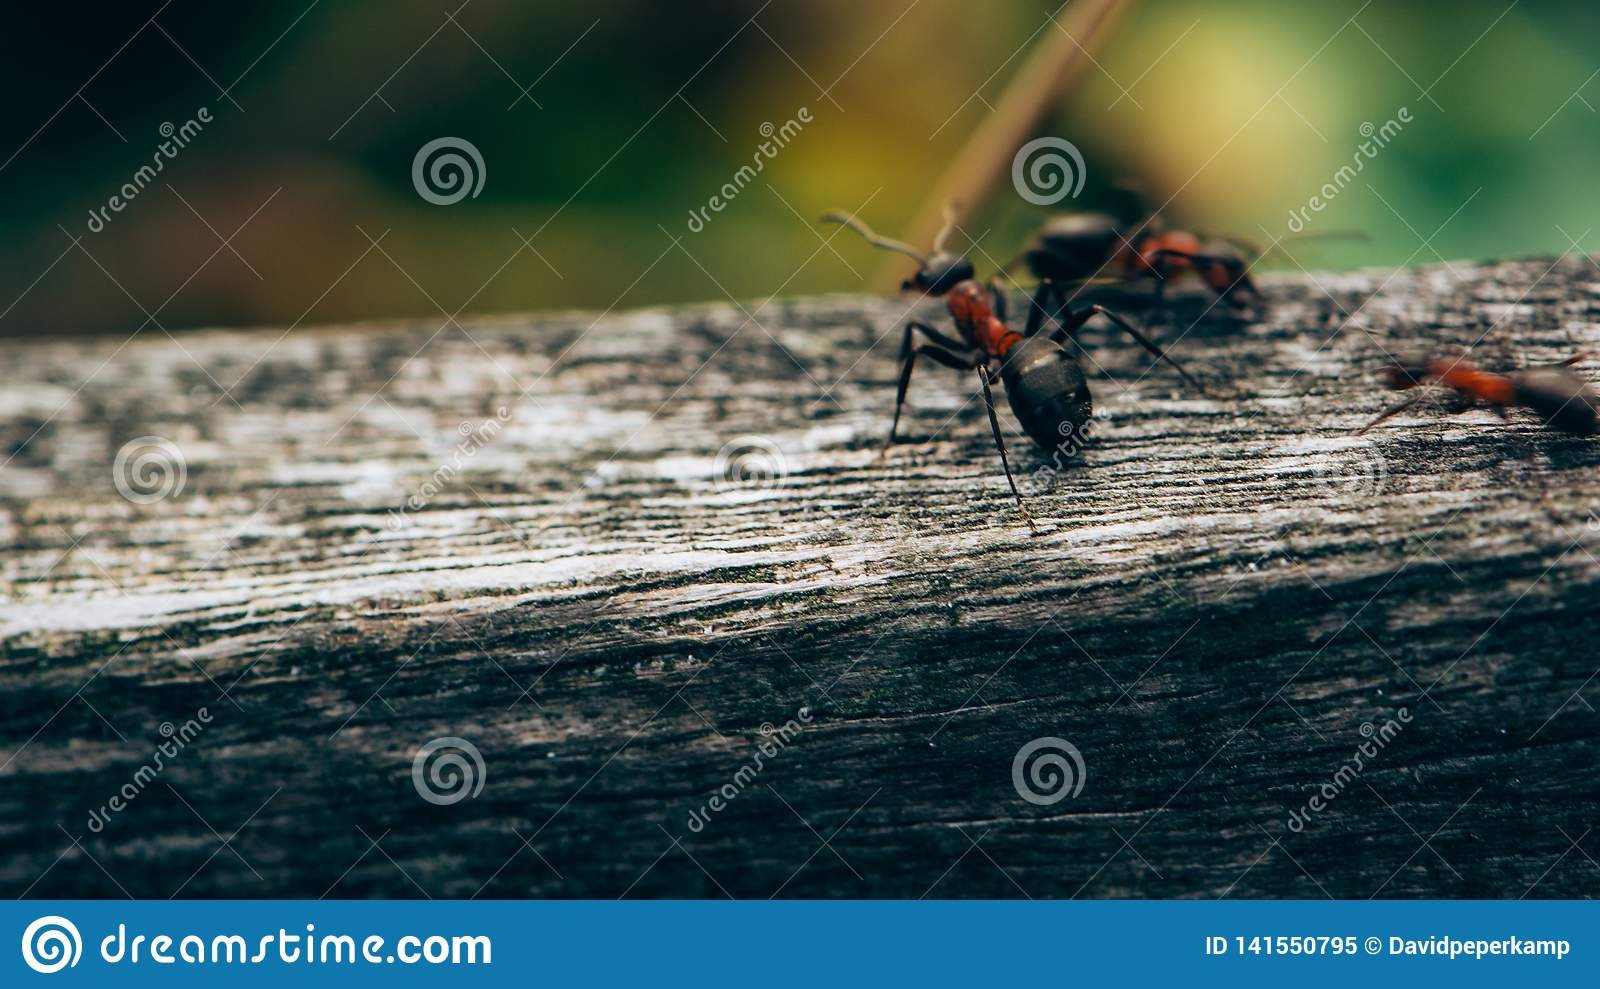 Ants on a fence, Macro photo, Ameland wadden island Holland the Netherlands